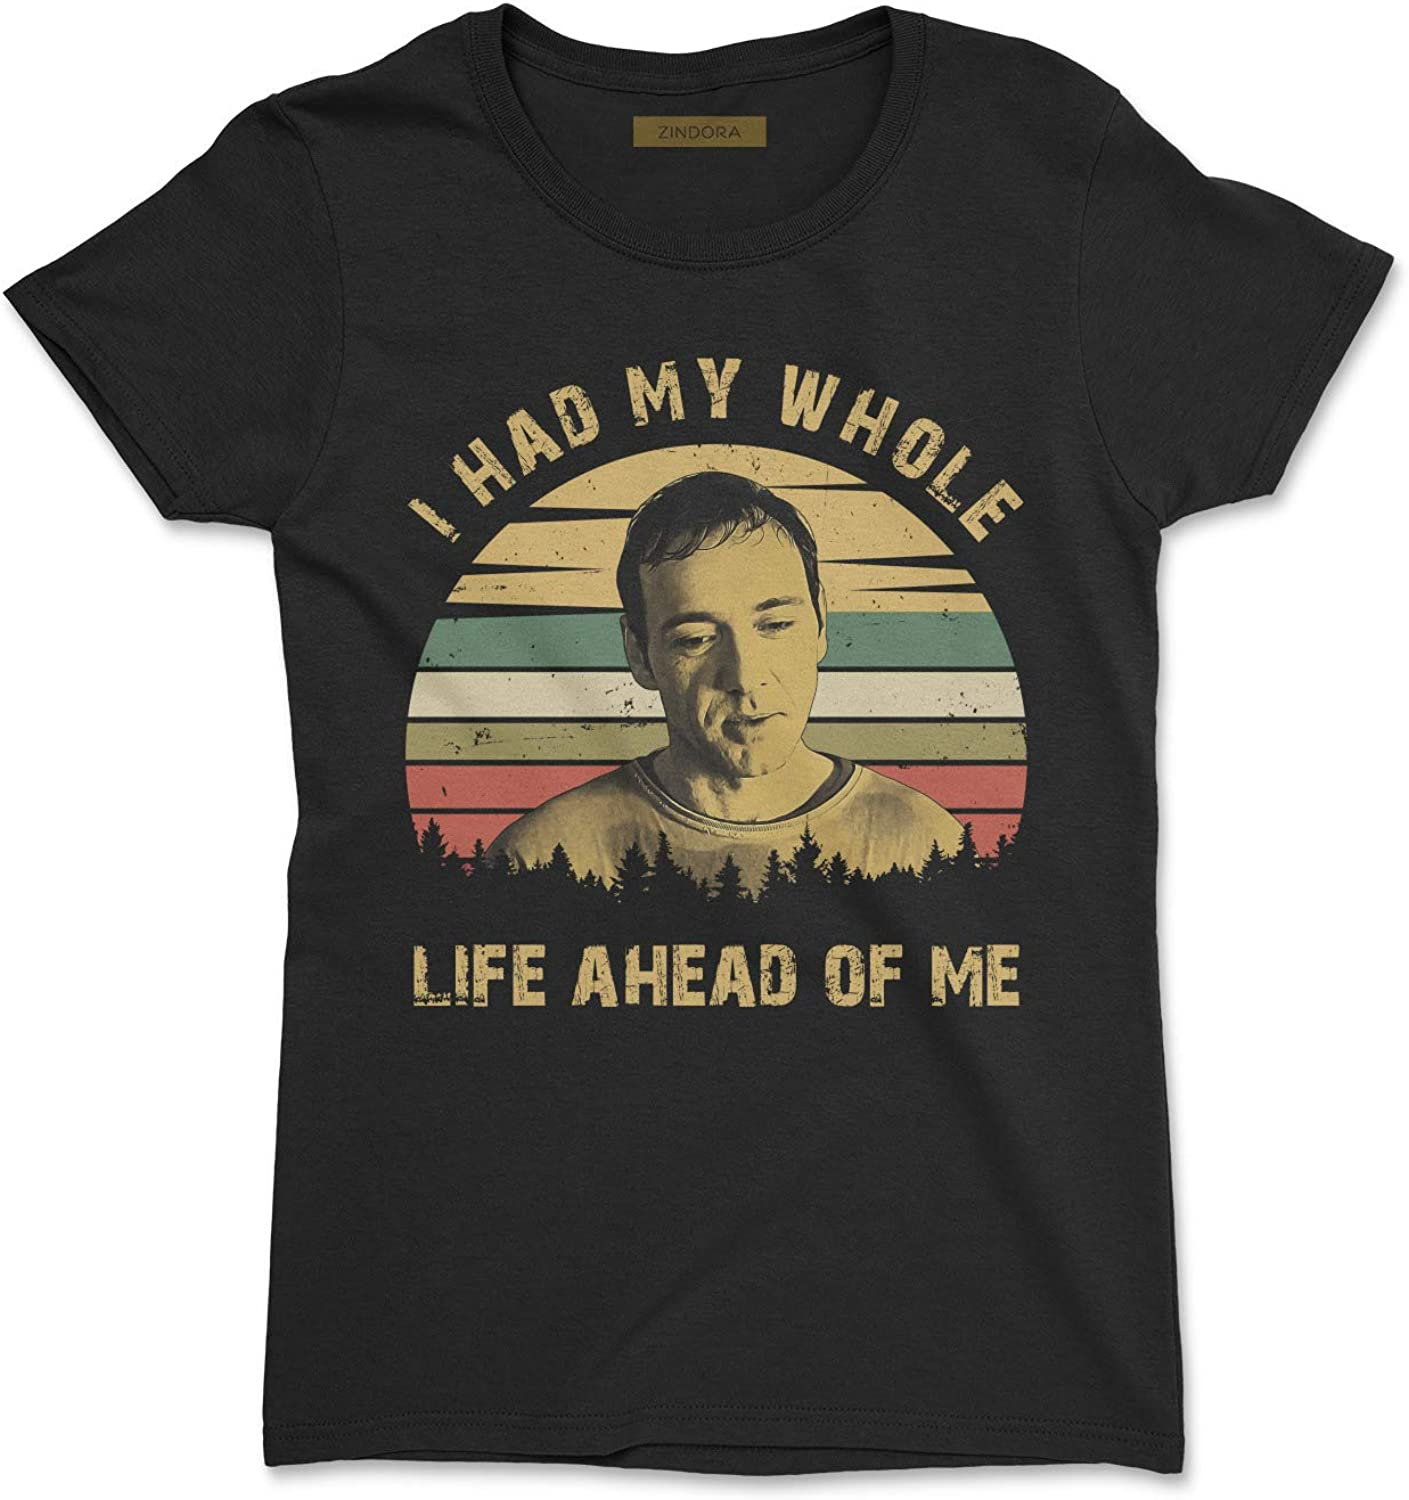 I Had My Whole Life Ahead of Me Vintage T-Shirt